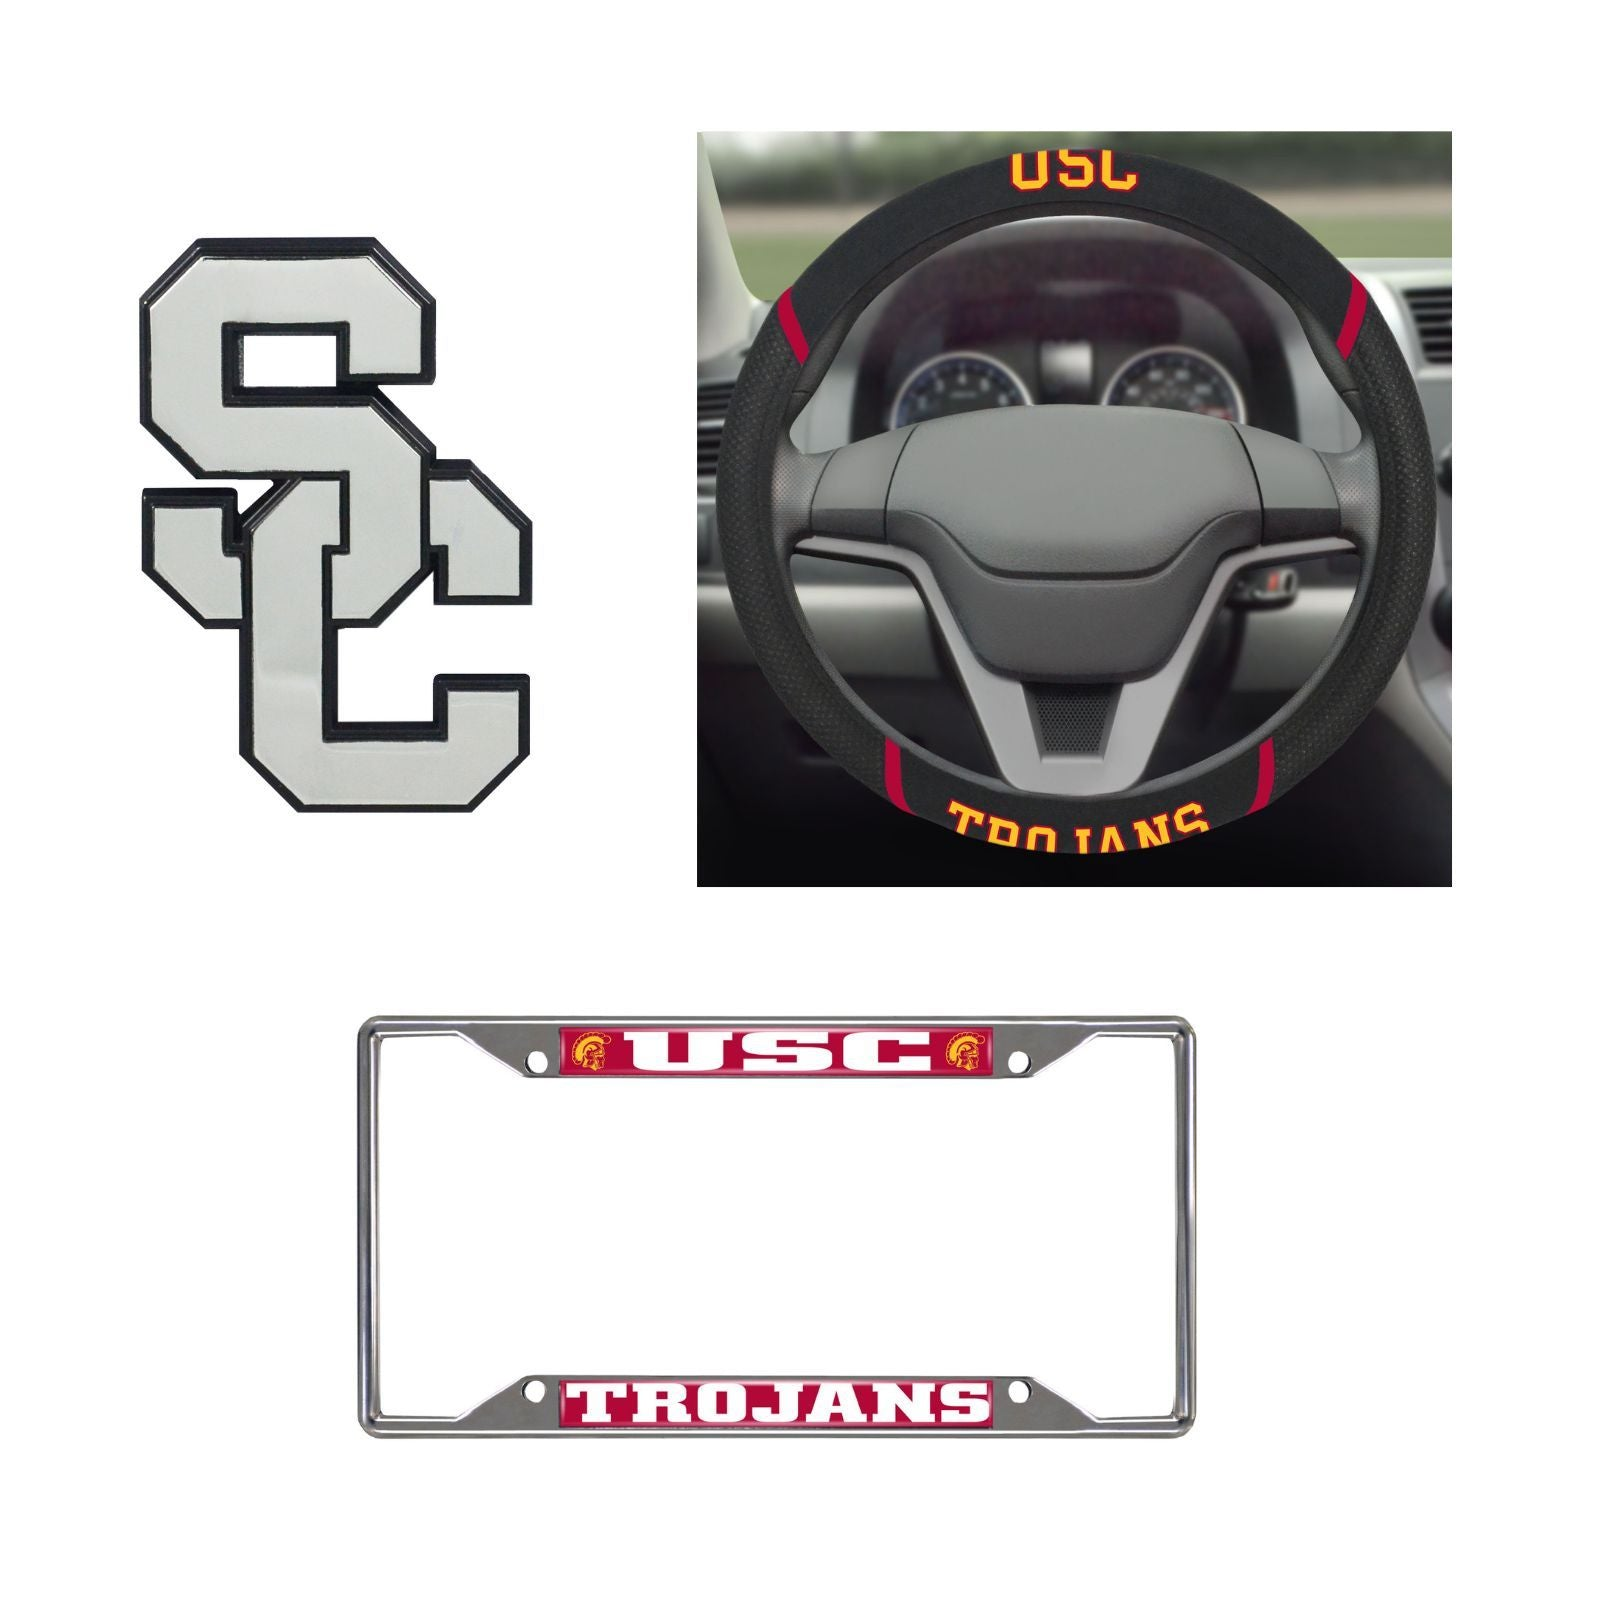 USC Trojans Steering Wheel Cover, License Plate Frame, 3D Chrome Emblem